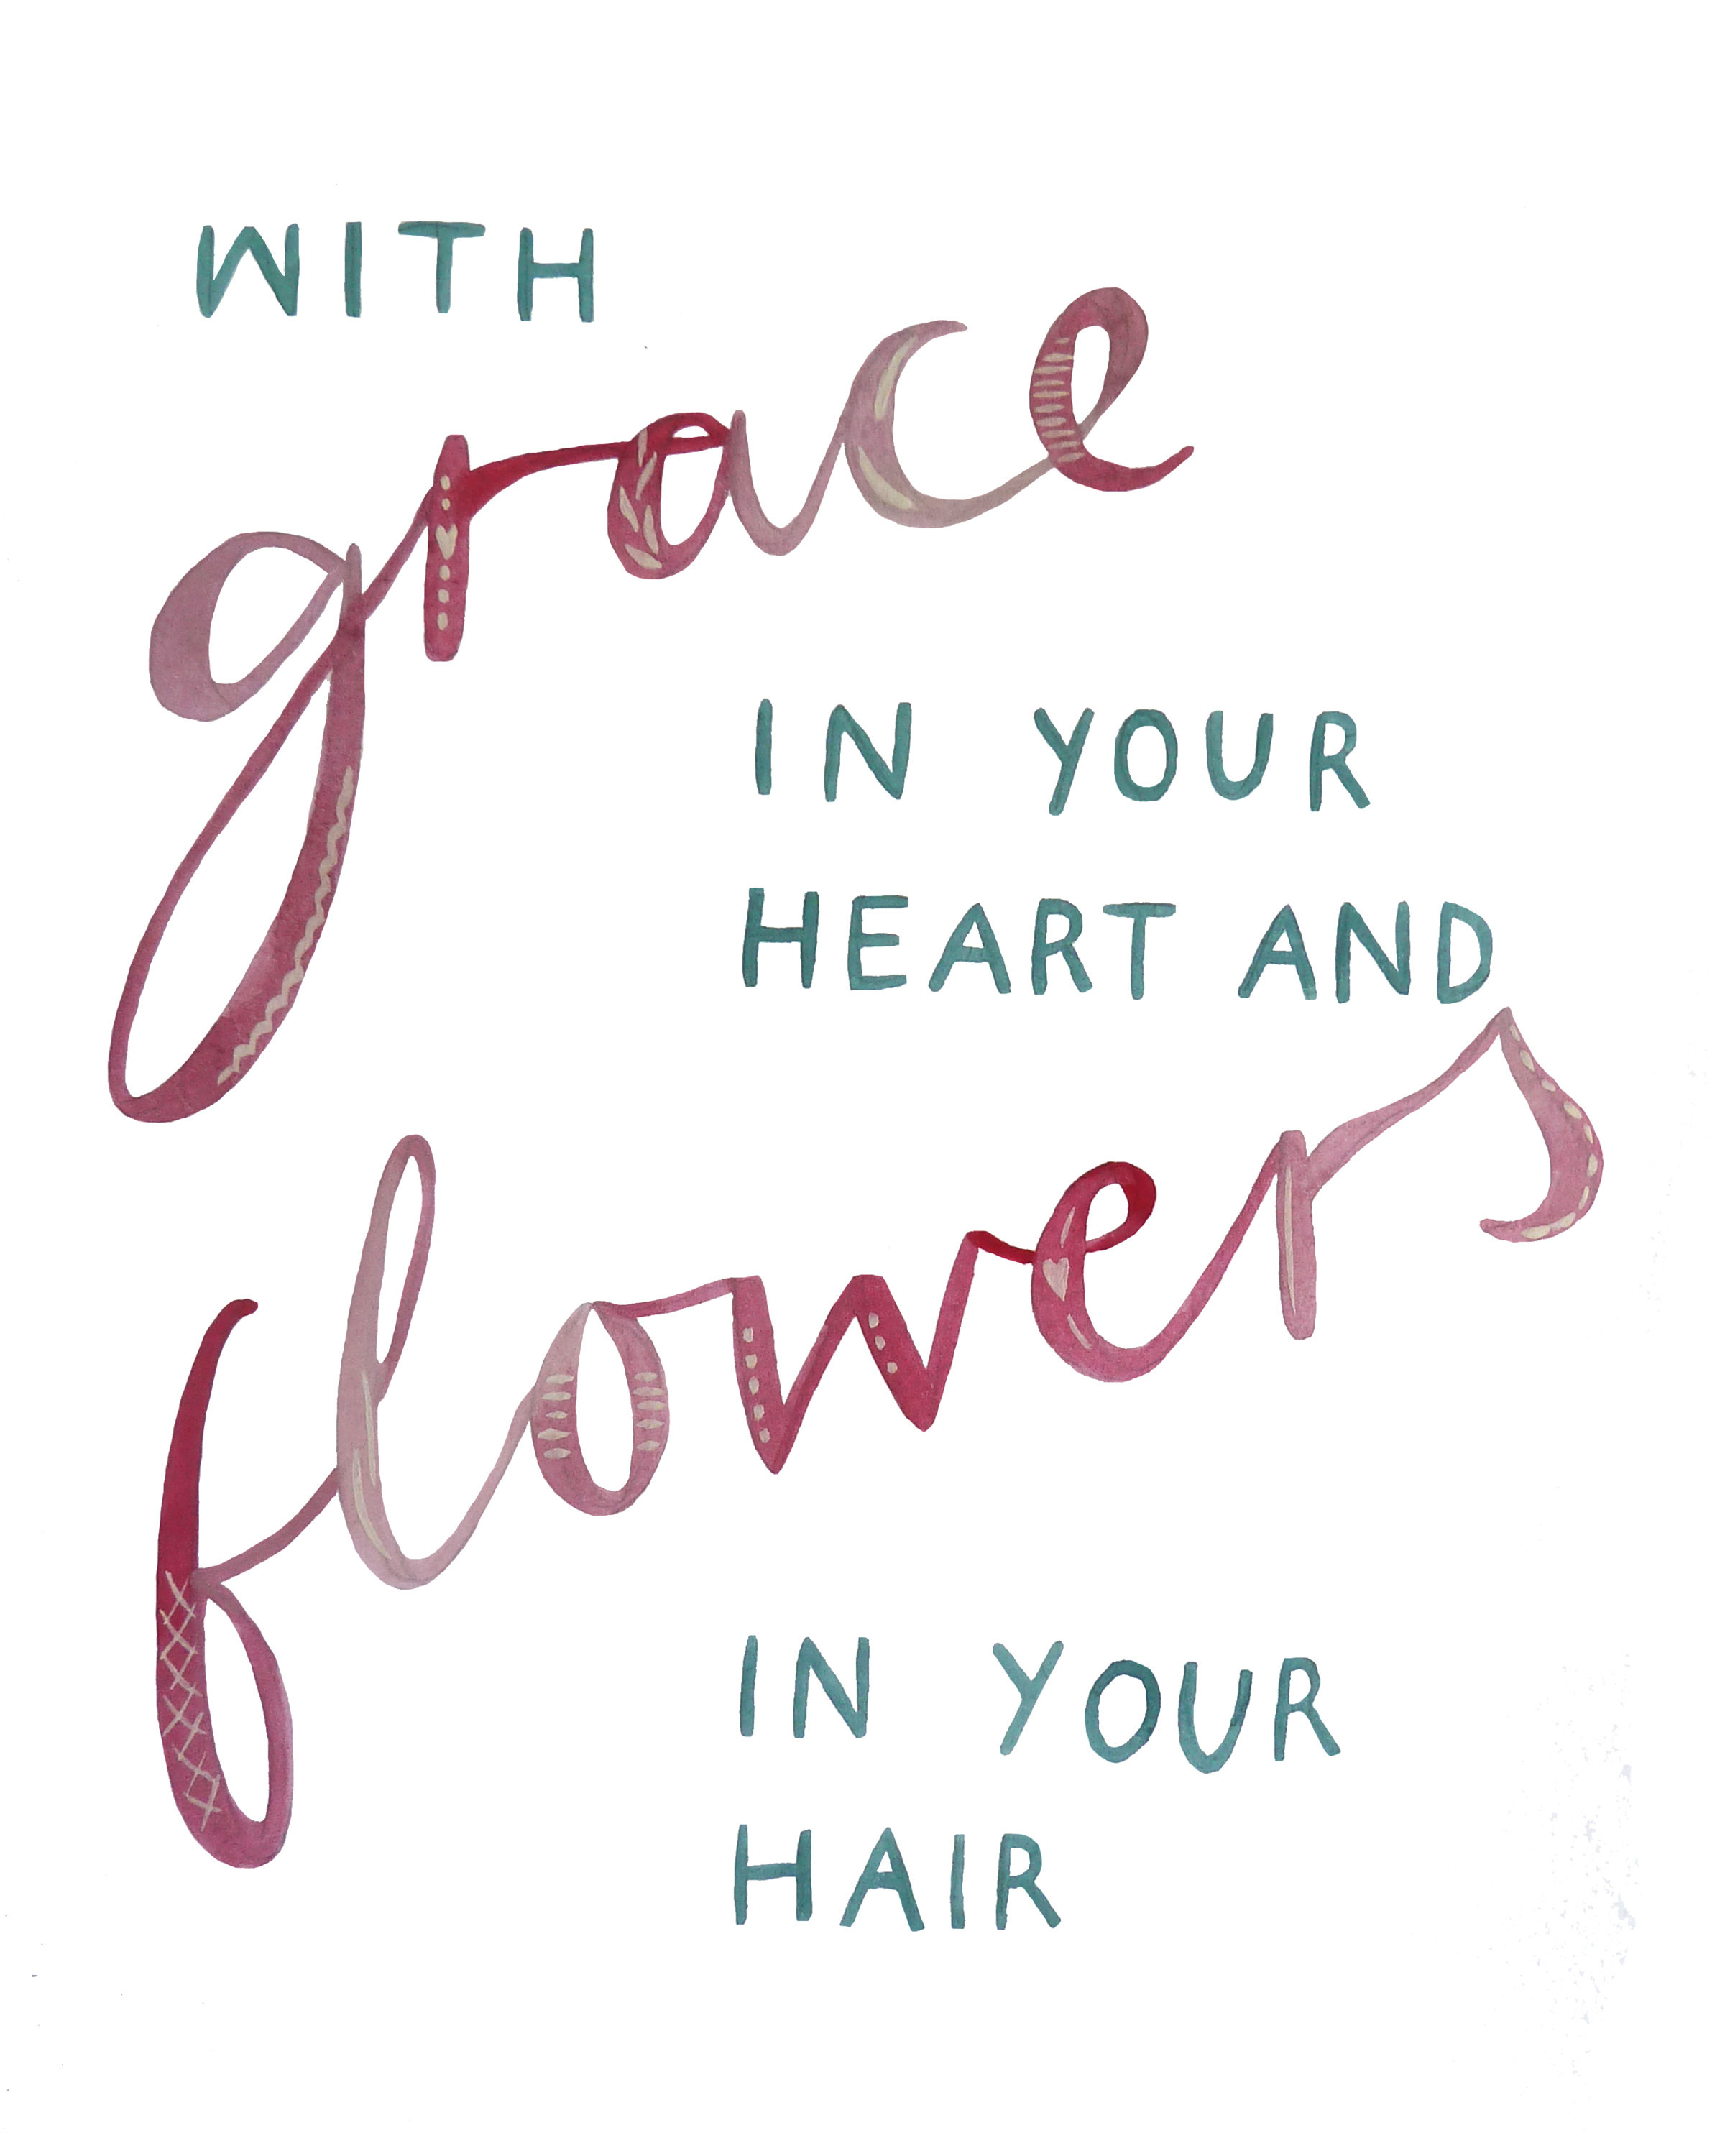 Quotes about flowers in hair izmirmasajfo